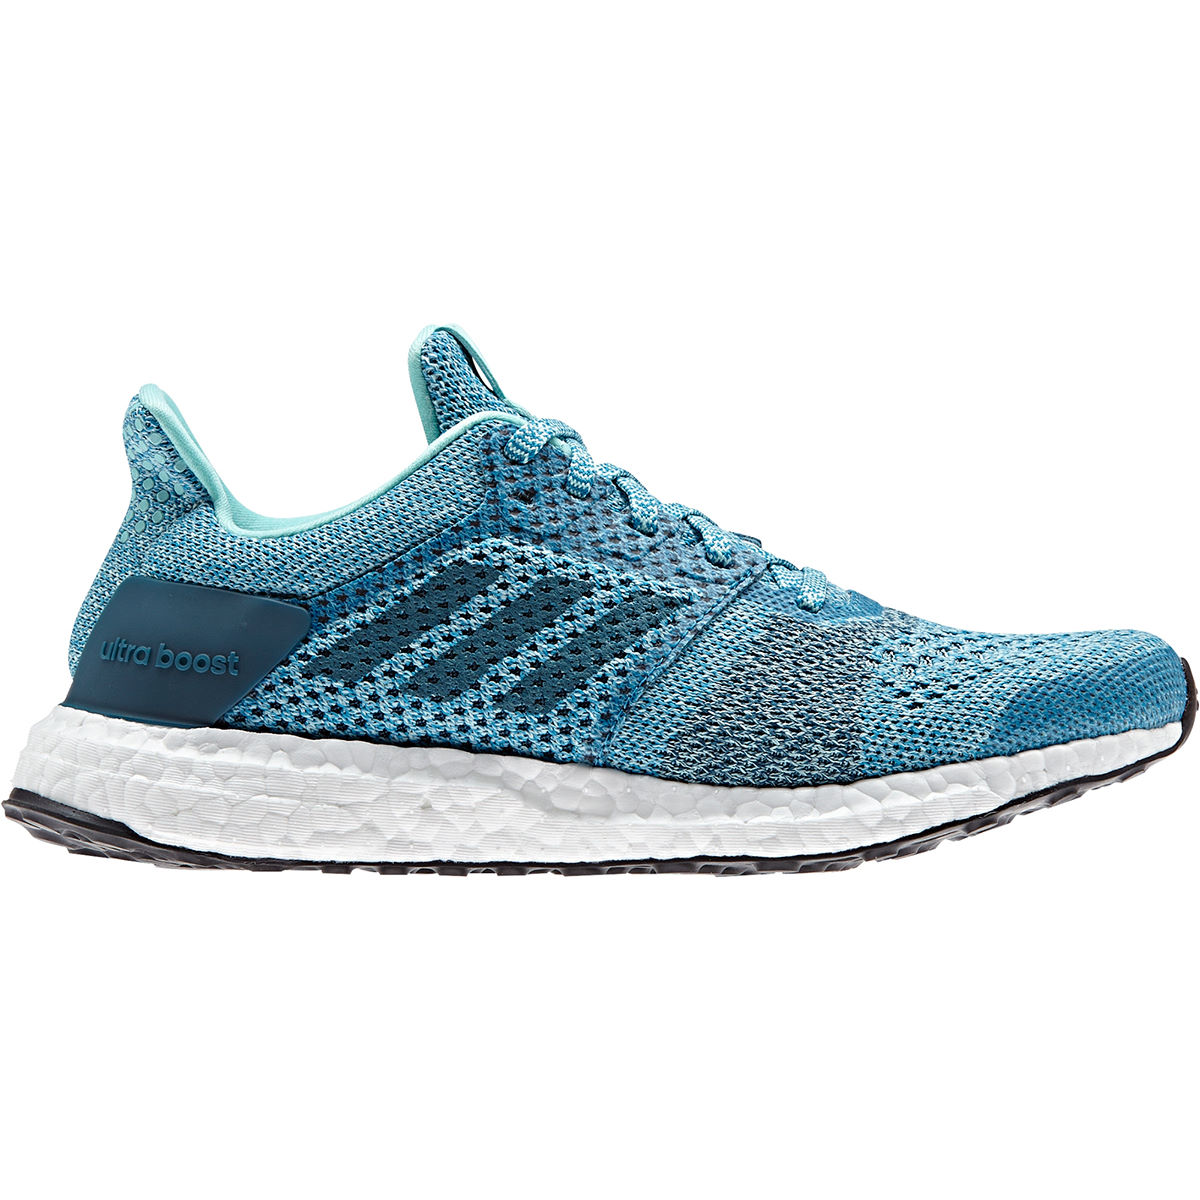 cheap for discount 4c8e5 913d1 Wiggle   adidas Women s UltraBOOST ST shoes   Running Shoes